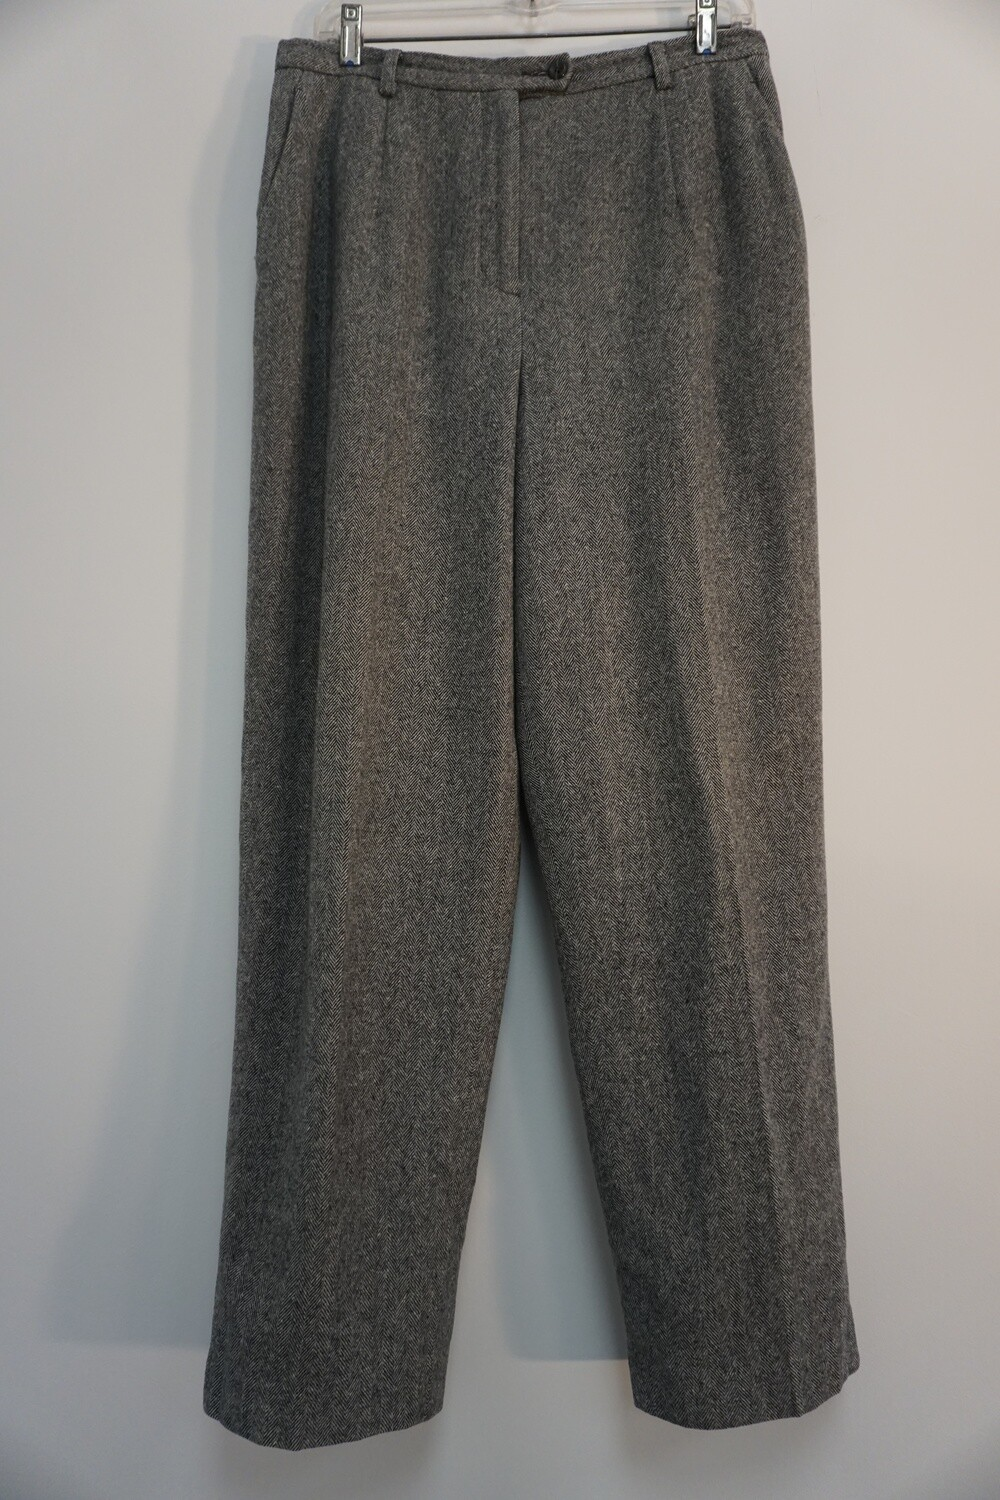 Pendleton Dress Pants